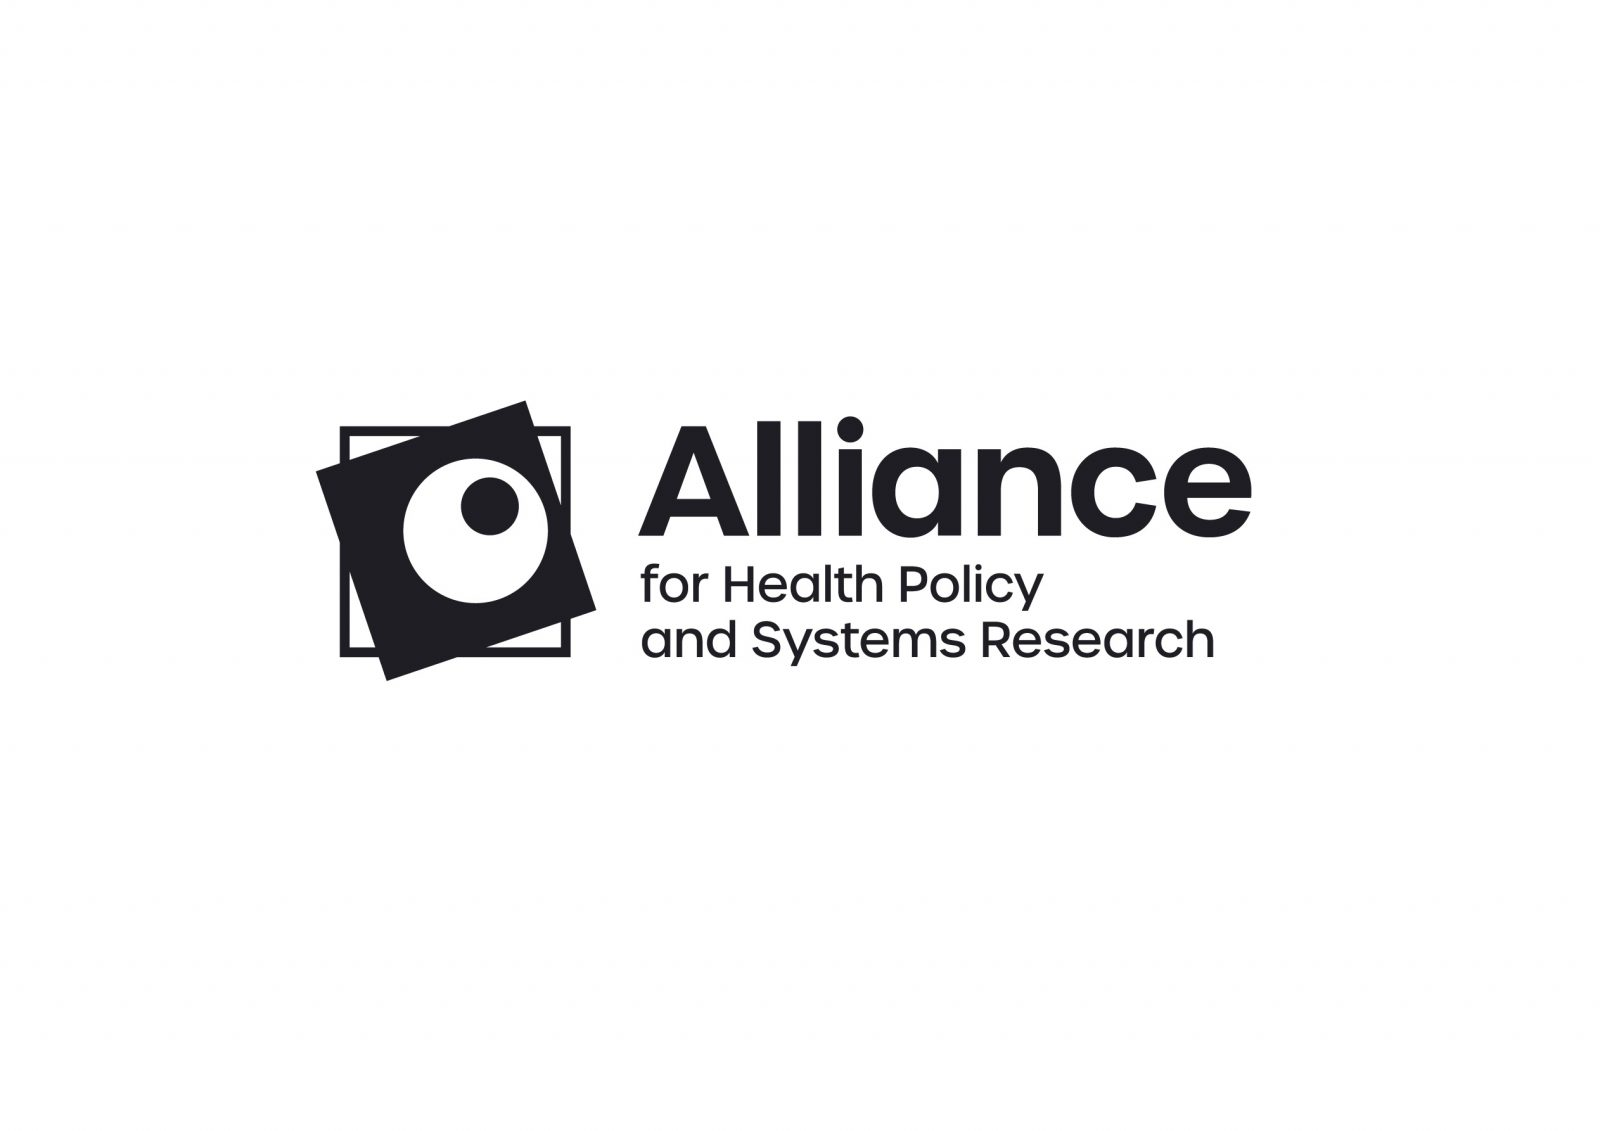 Logo for the Alliance for Health Policy and Systems Research